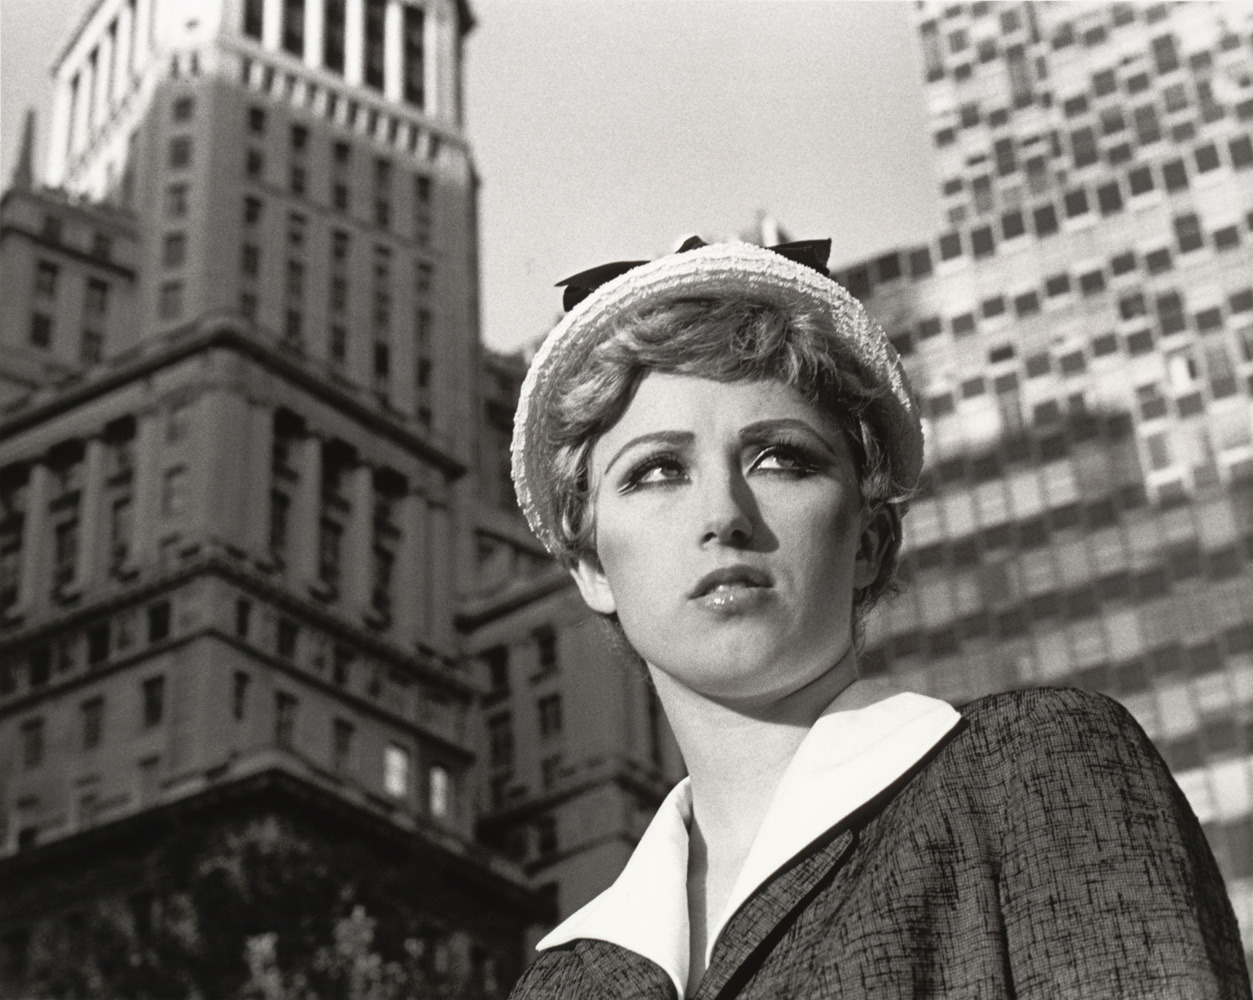 Untitled Film Still #21, 1978 Cindy Sherman takes pictures only of herself, but she always insists she doesn't make self-portraits. A retrospective of her work is on view Feb. 26 – June 11 at New York's Museum of Modern Art. See more here.